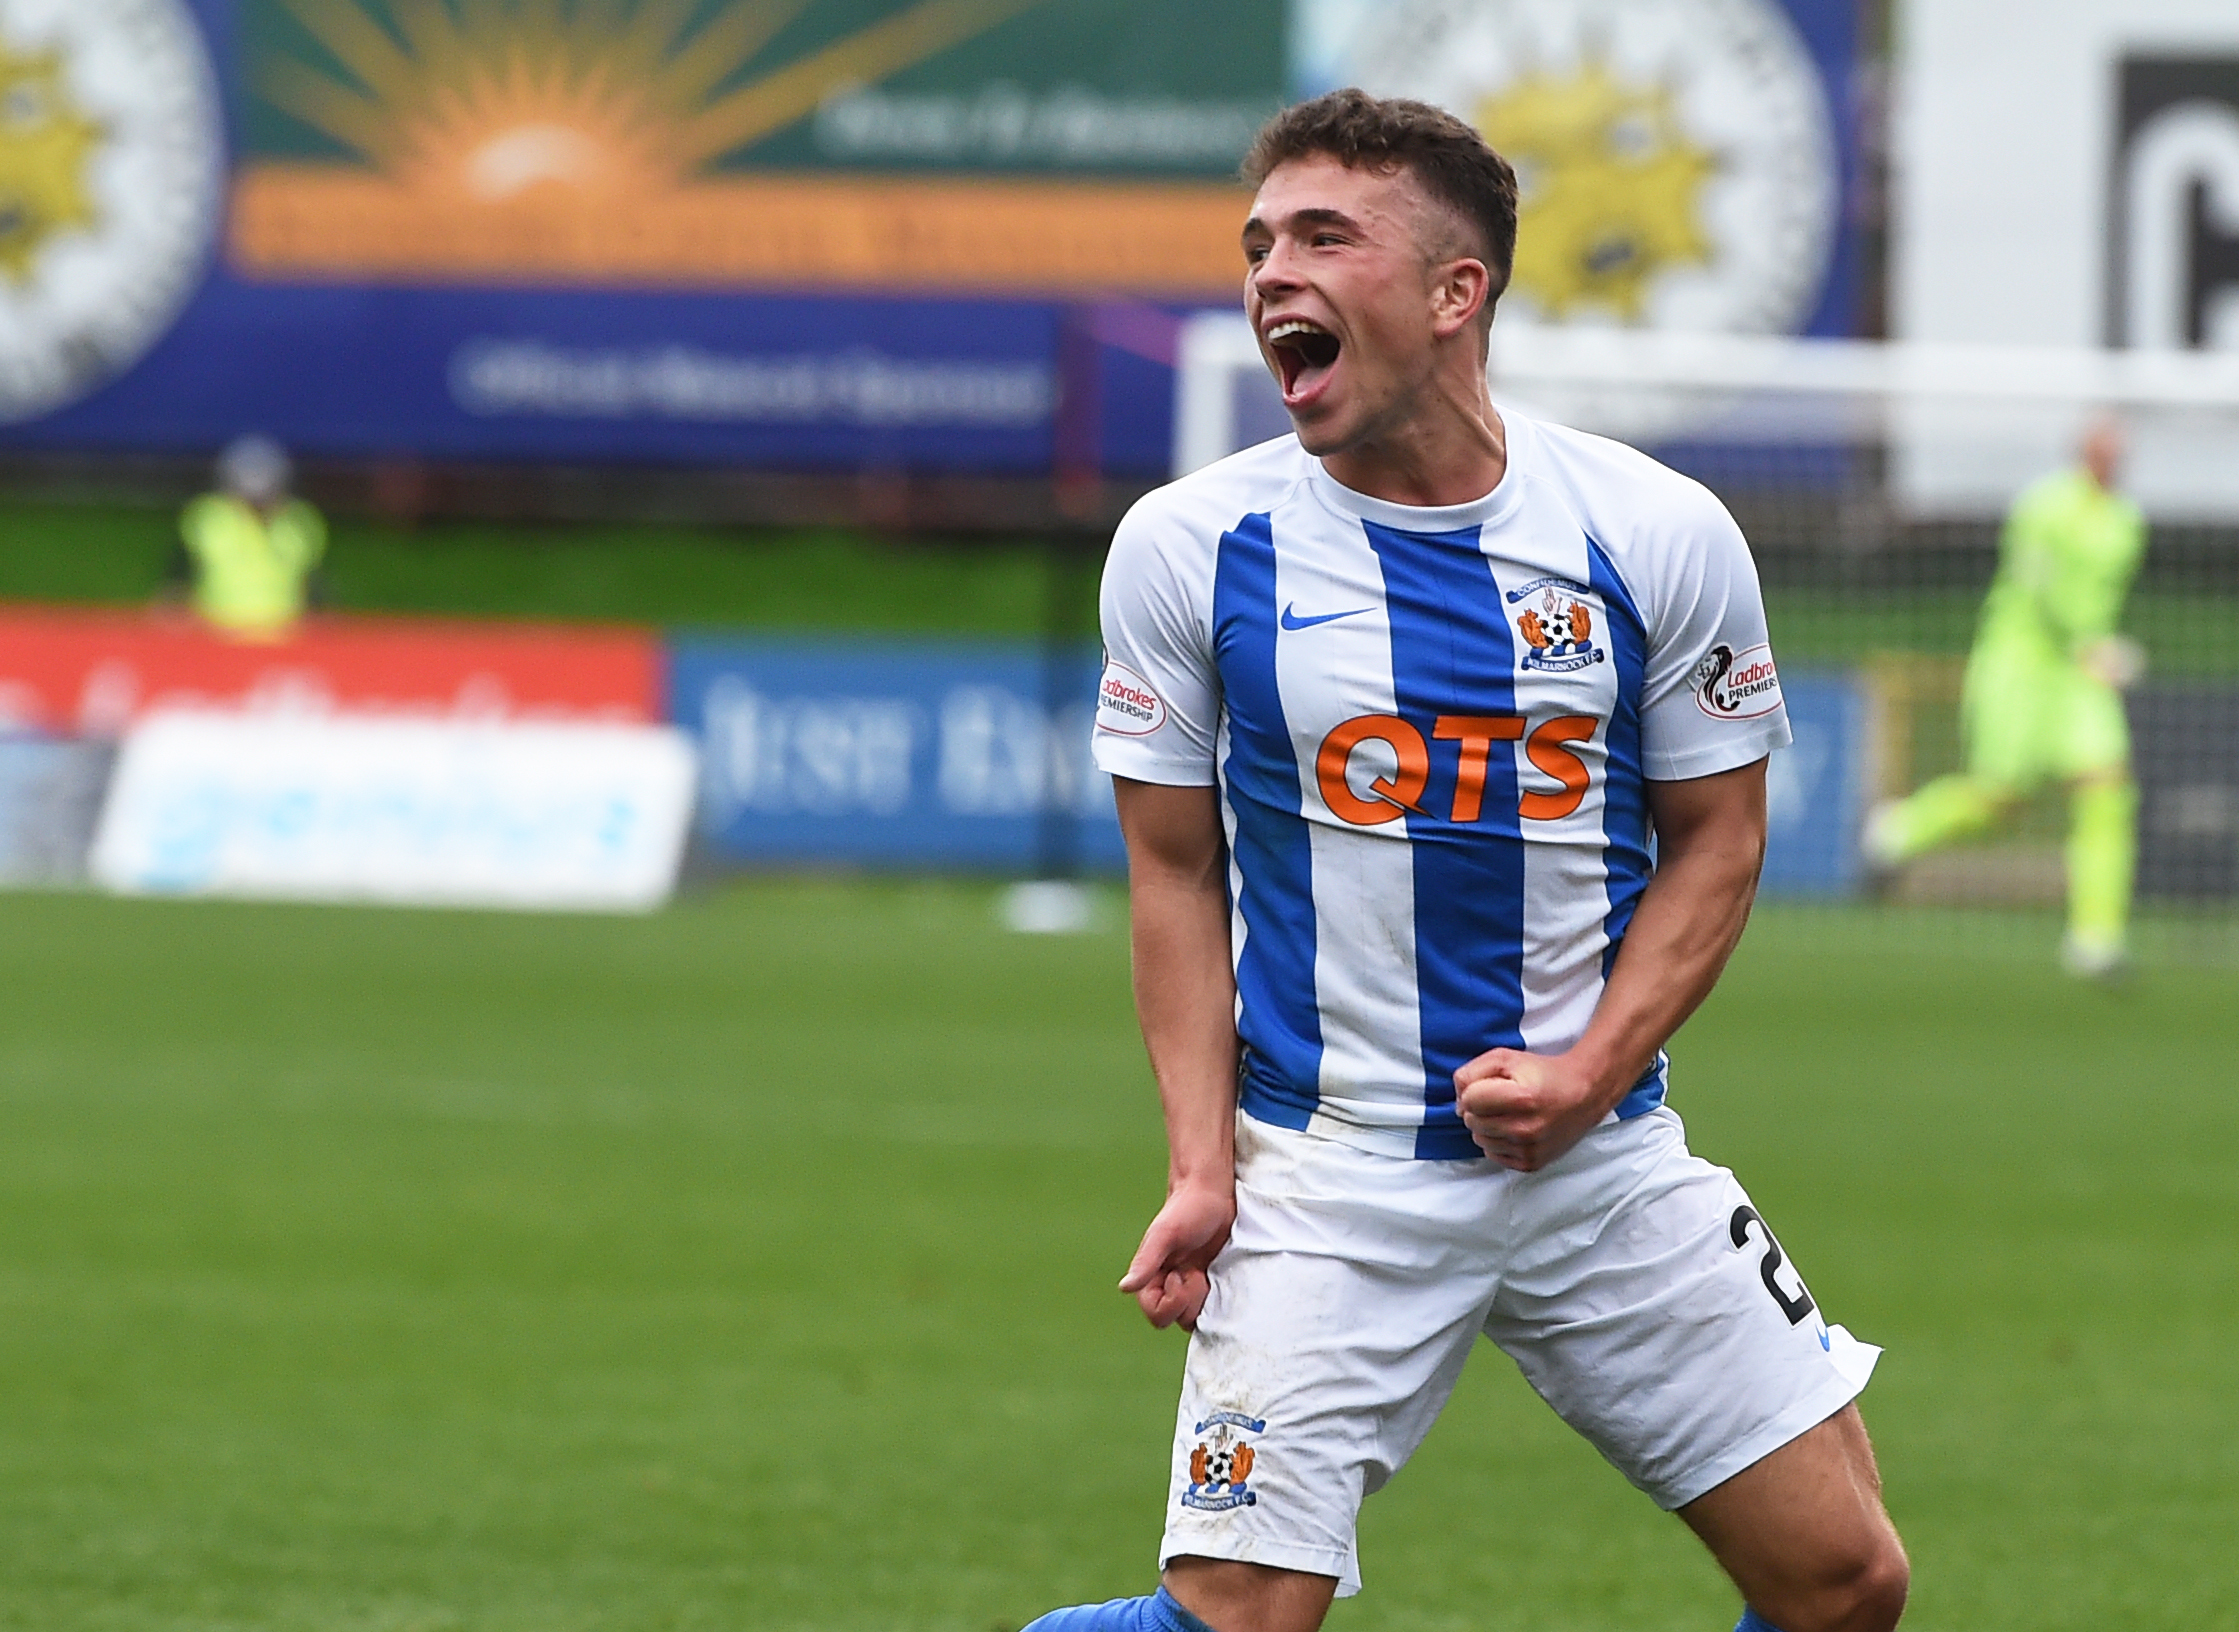 More to come: Adam Frizzell thinks that Kilmarnock are ready to show their best after a poor start to the season.